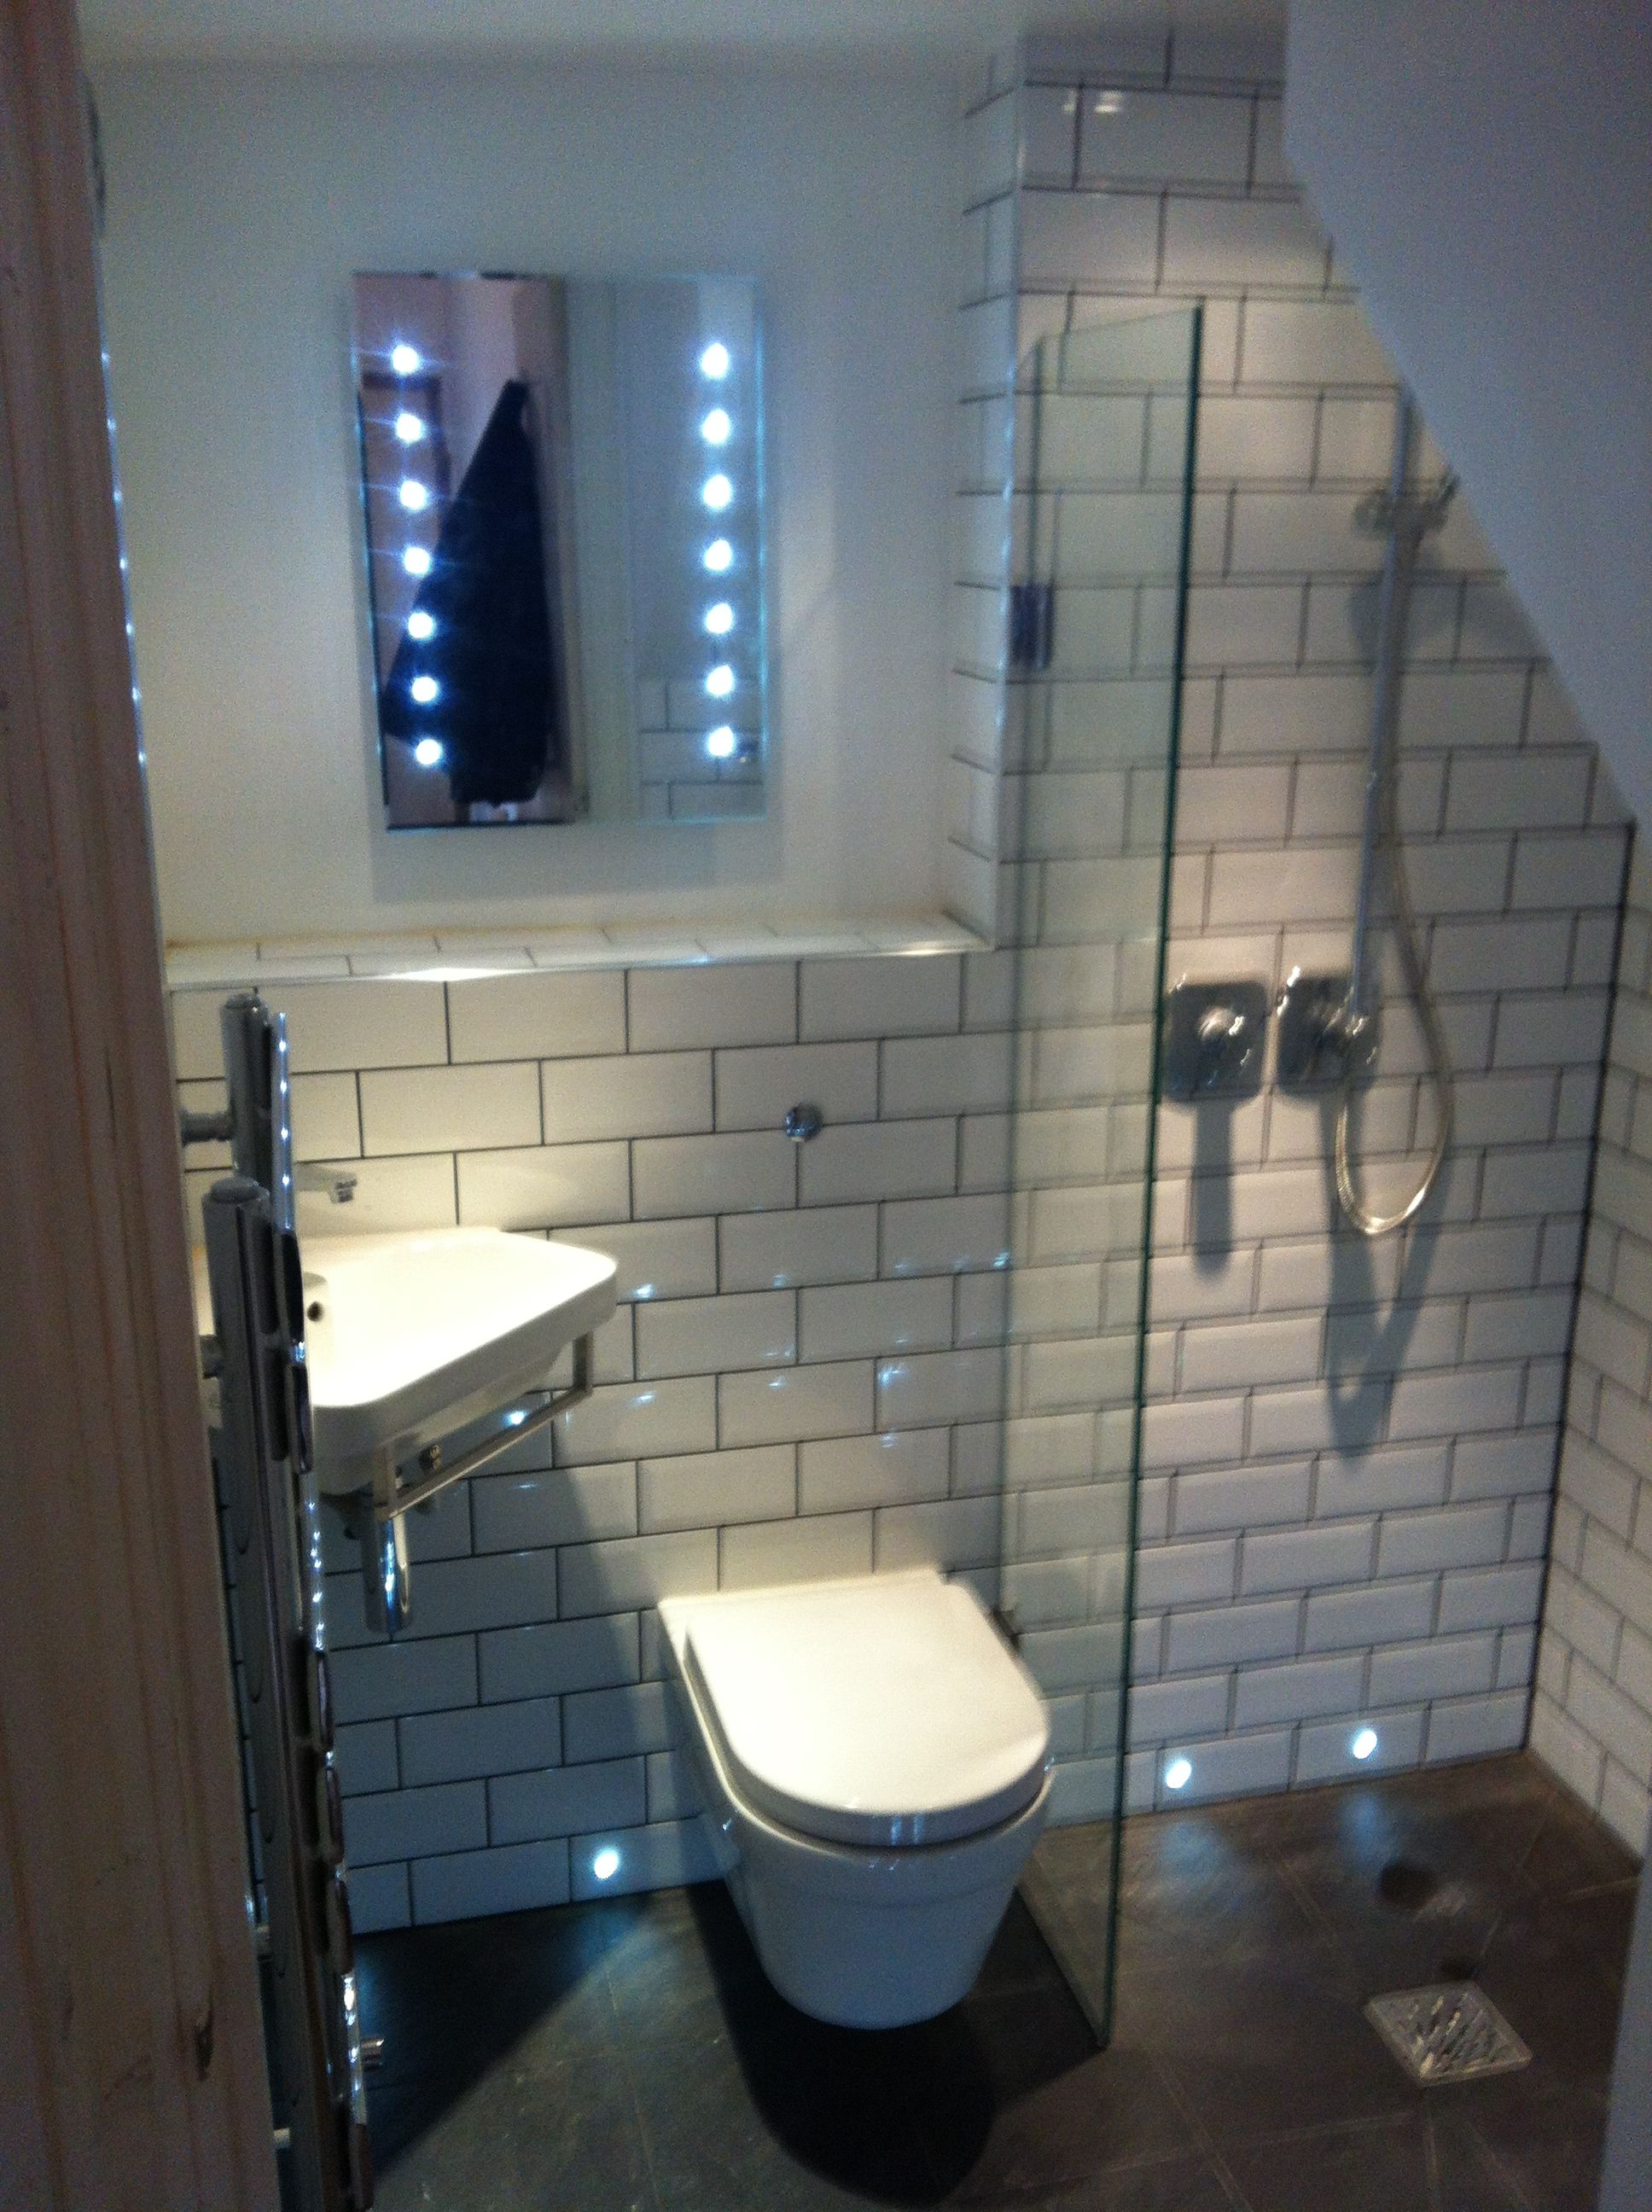 Pin By Linda Laing On Bathroom Ideas Small Shower Room Tiny Bathrooms Very Small Bathroom